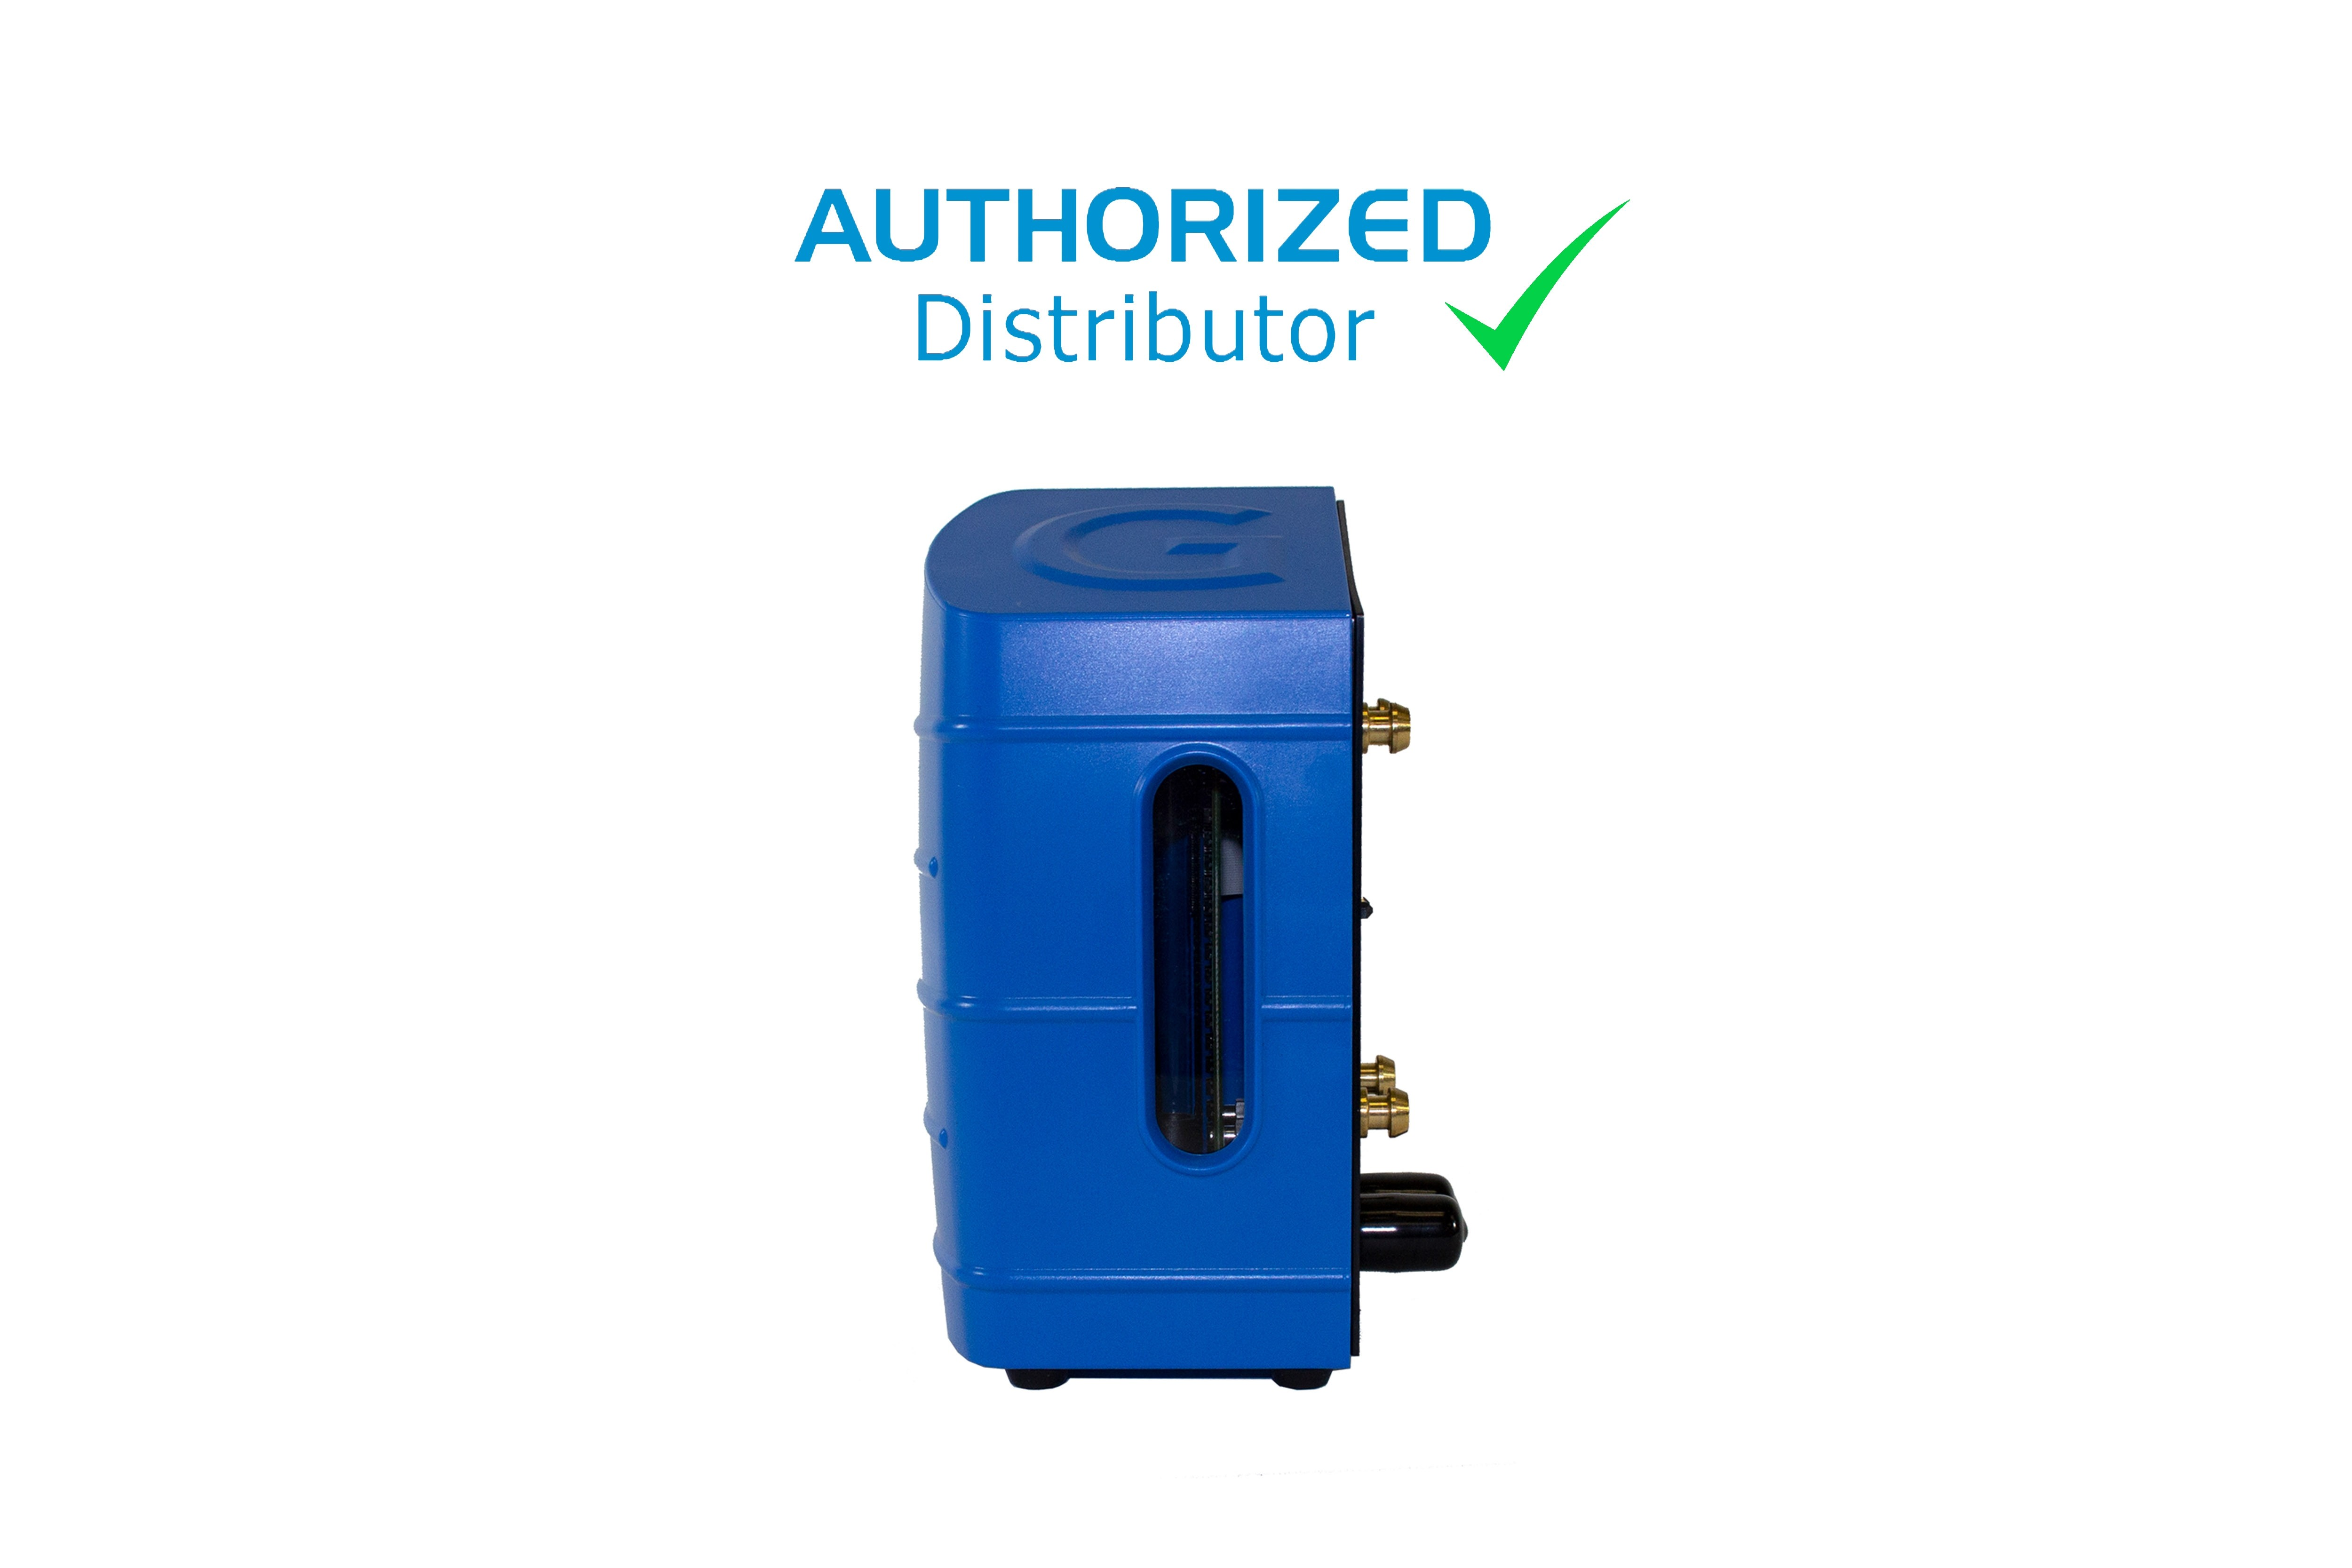 Gilibrator 3, Standard Flow Dry Cell (Flow Range 50-5,000 cc/min)